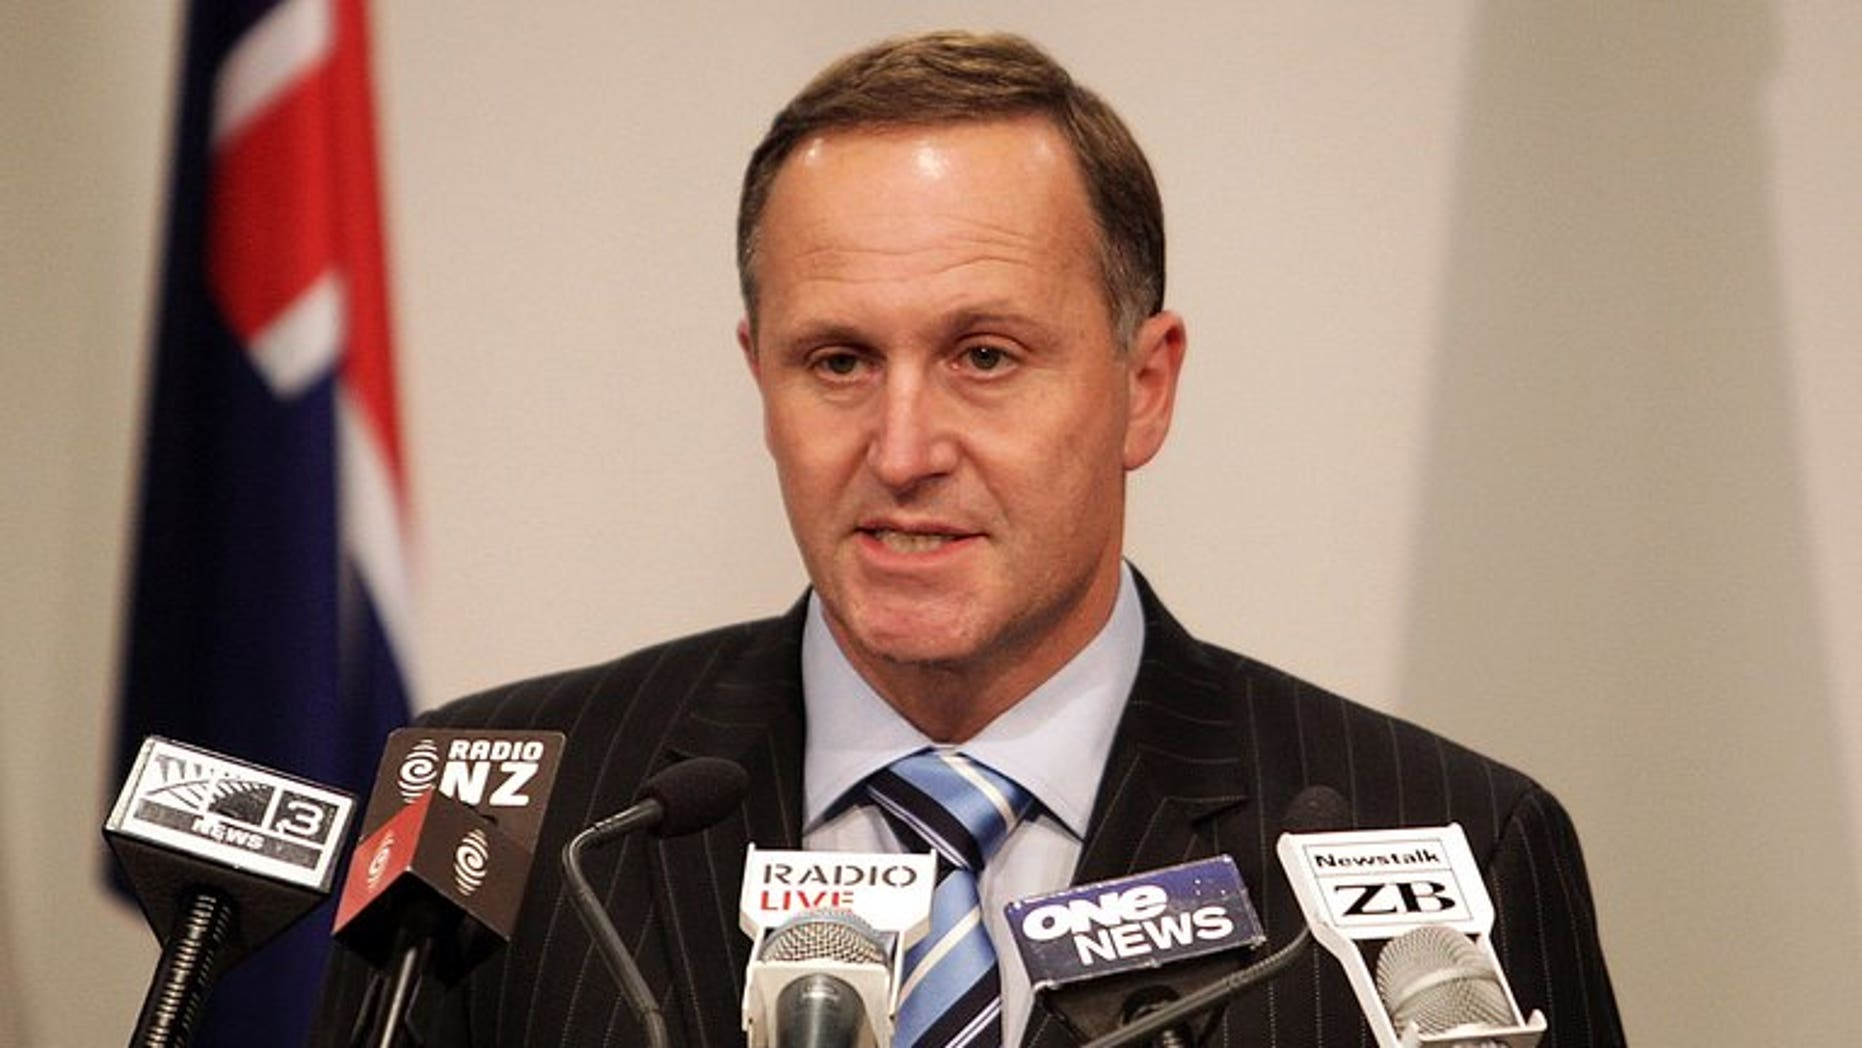 """New Zealand's Prime Minister John Key speaks to the media in Wellington on October 27, 2010. The """"hacktivist"""" group Anonymous briefly crashed Key's website in protest at plans to allow the country's intelligence agency to spy on local residents."""